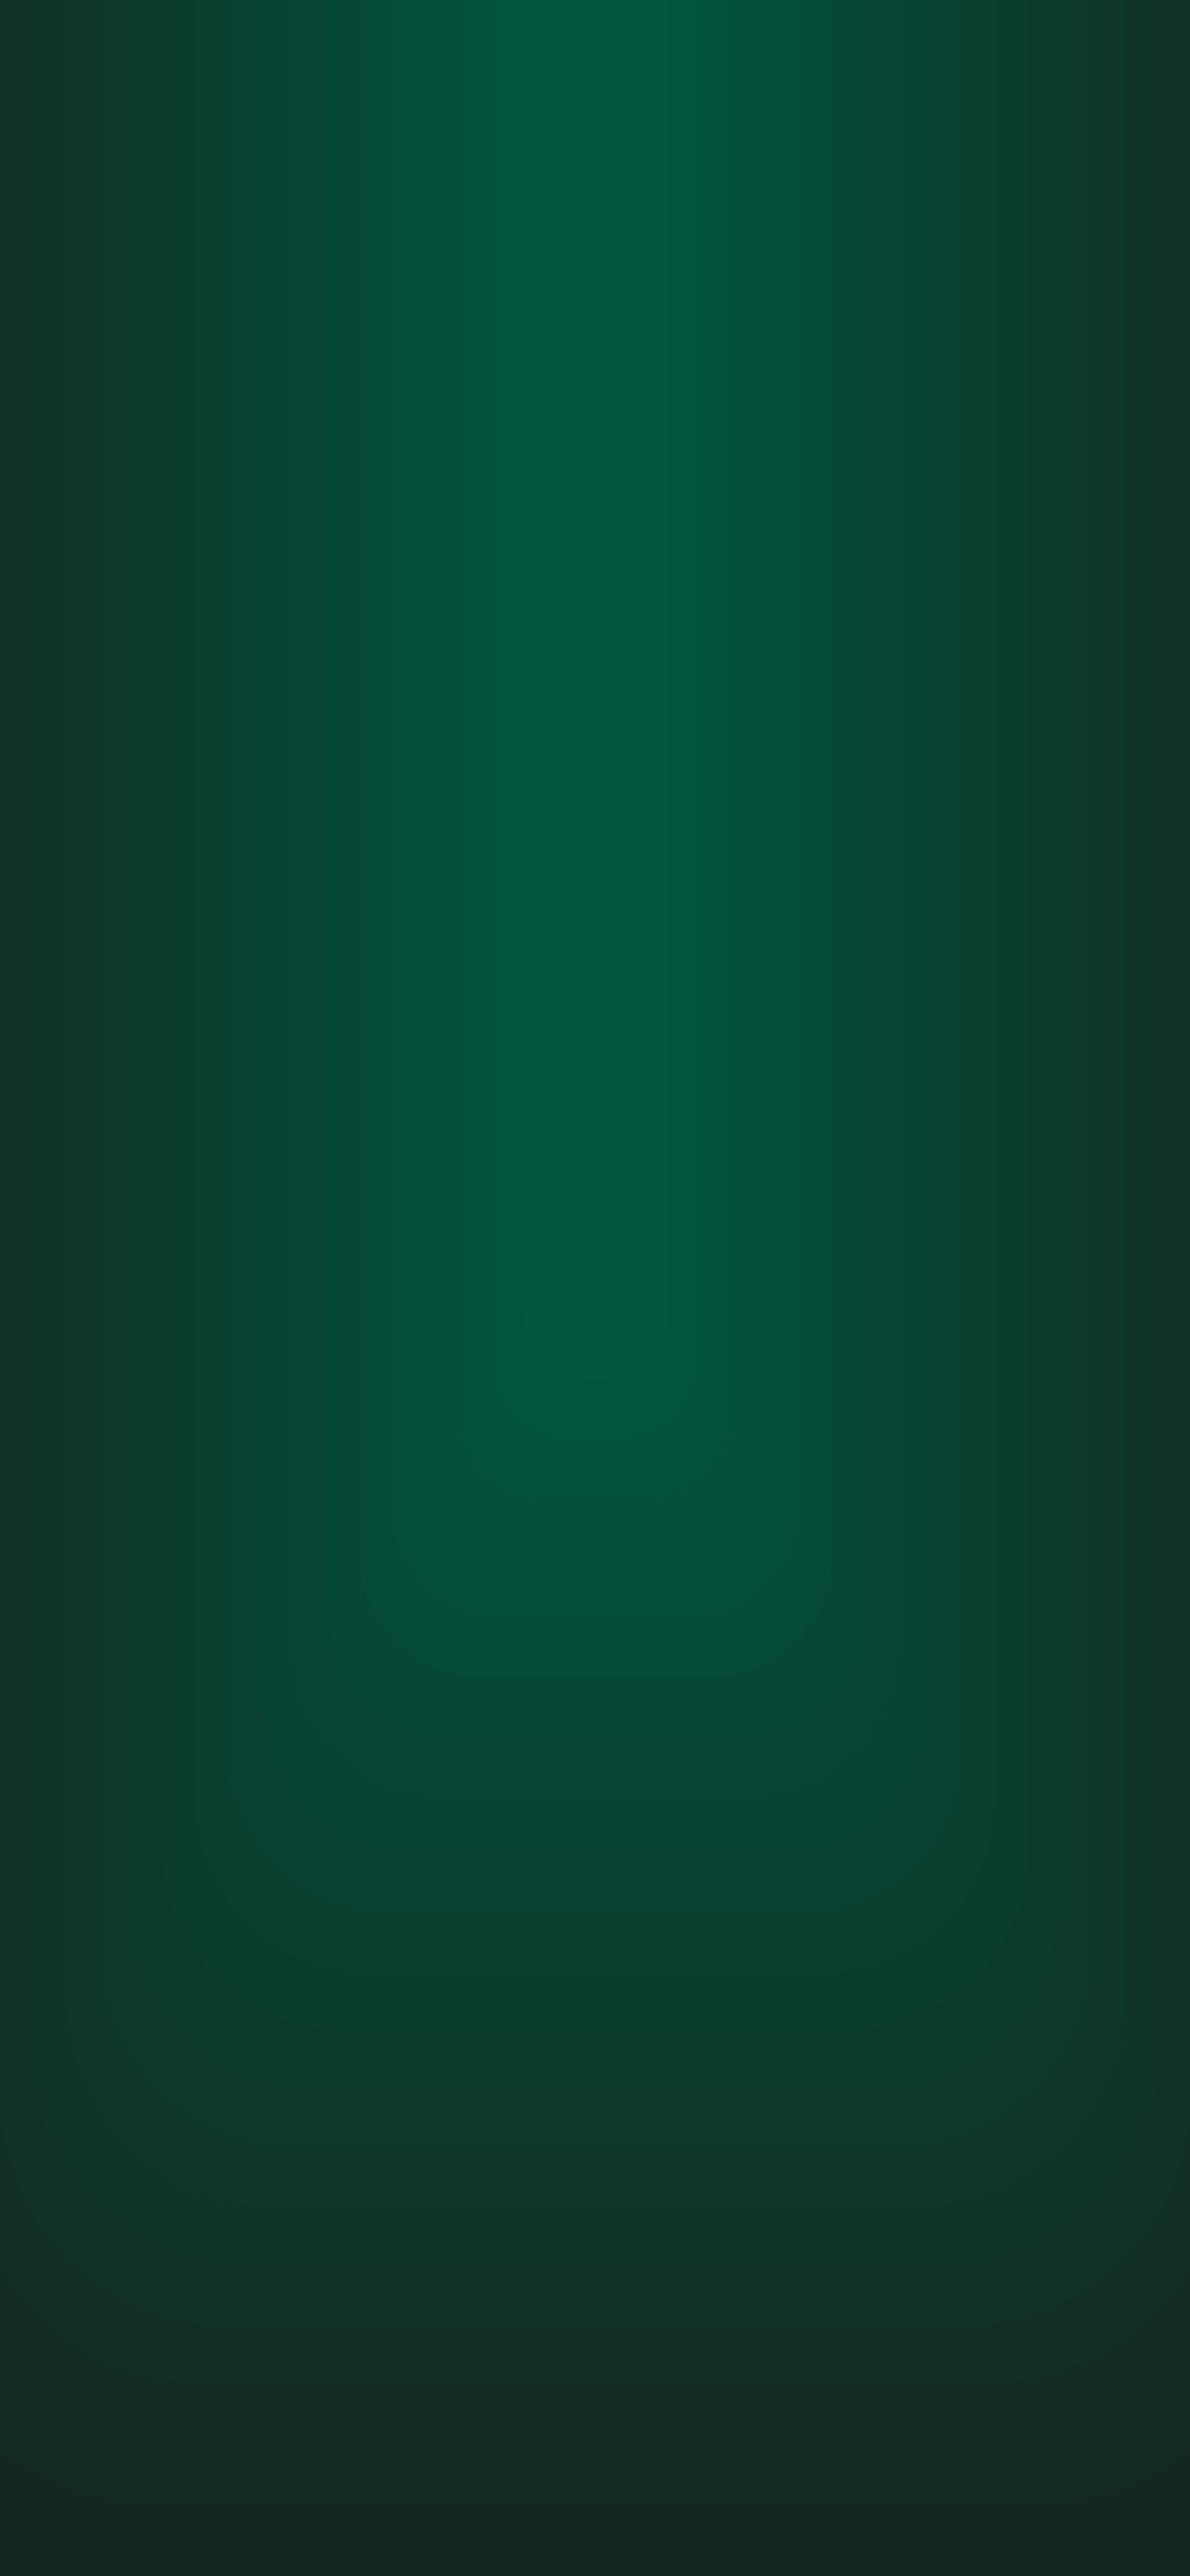 green.gradient.wallpaper.for.phone